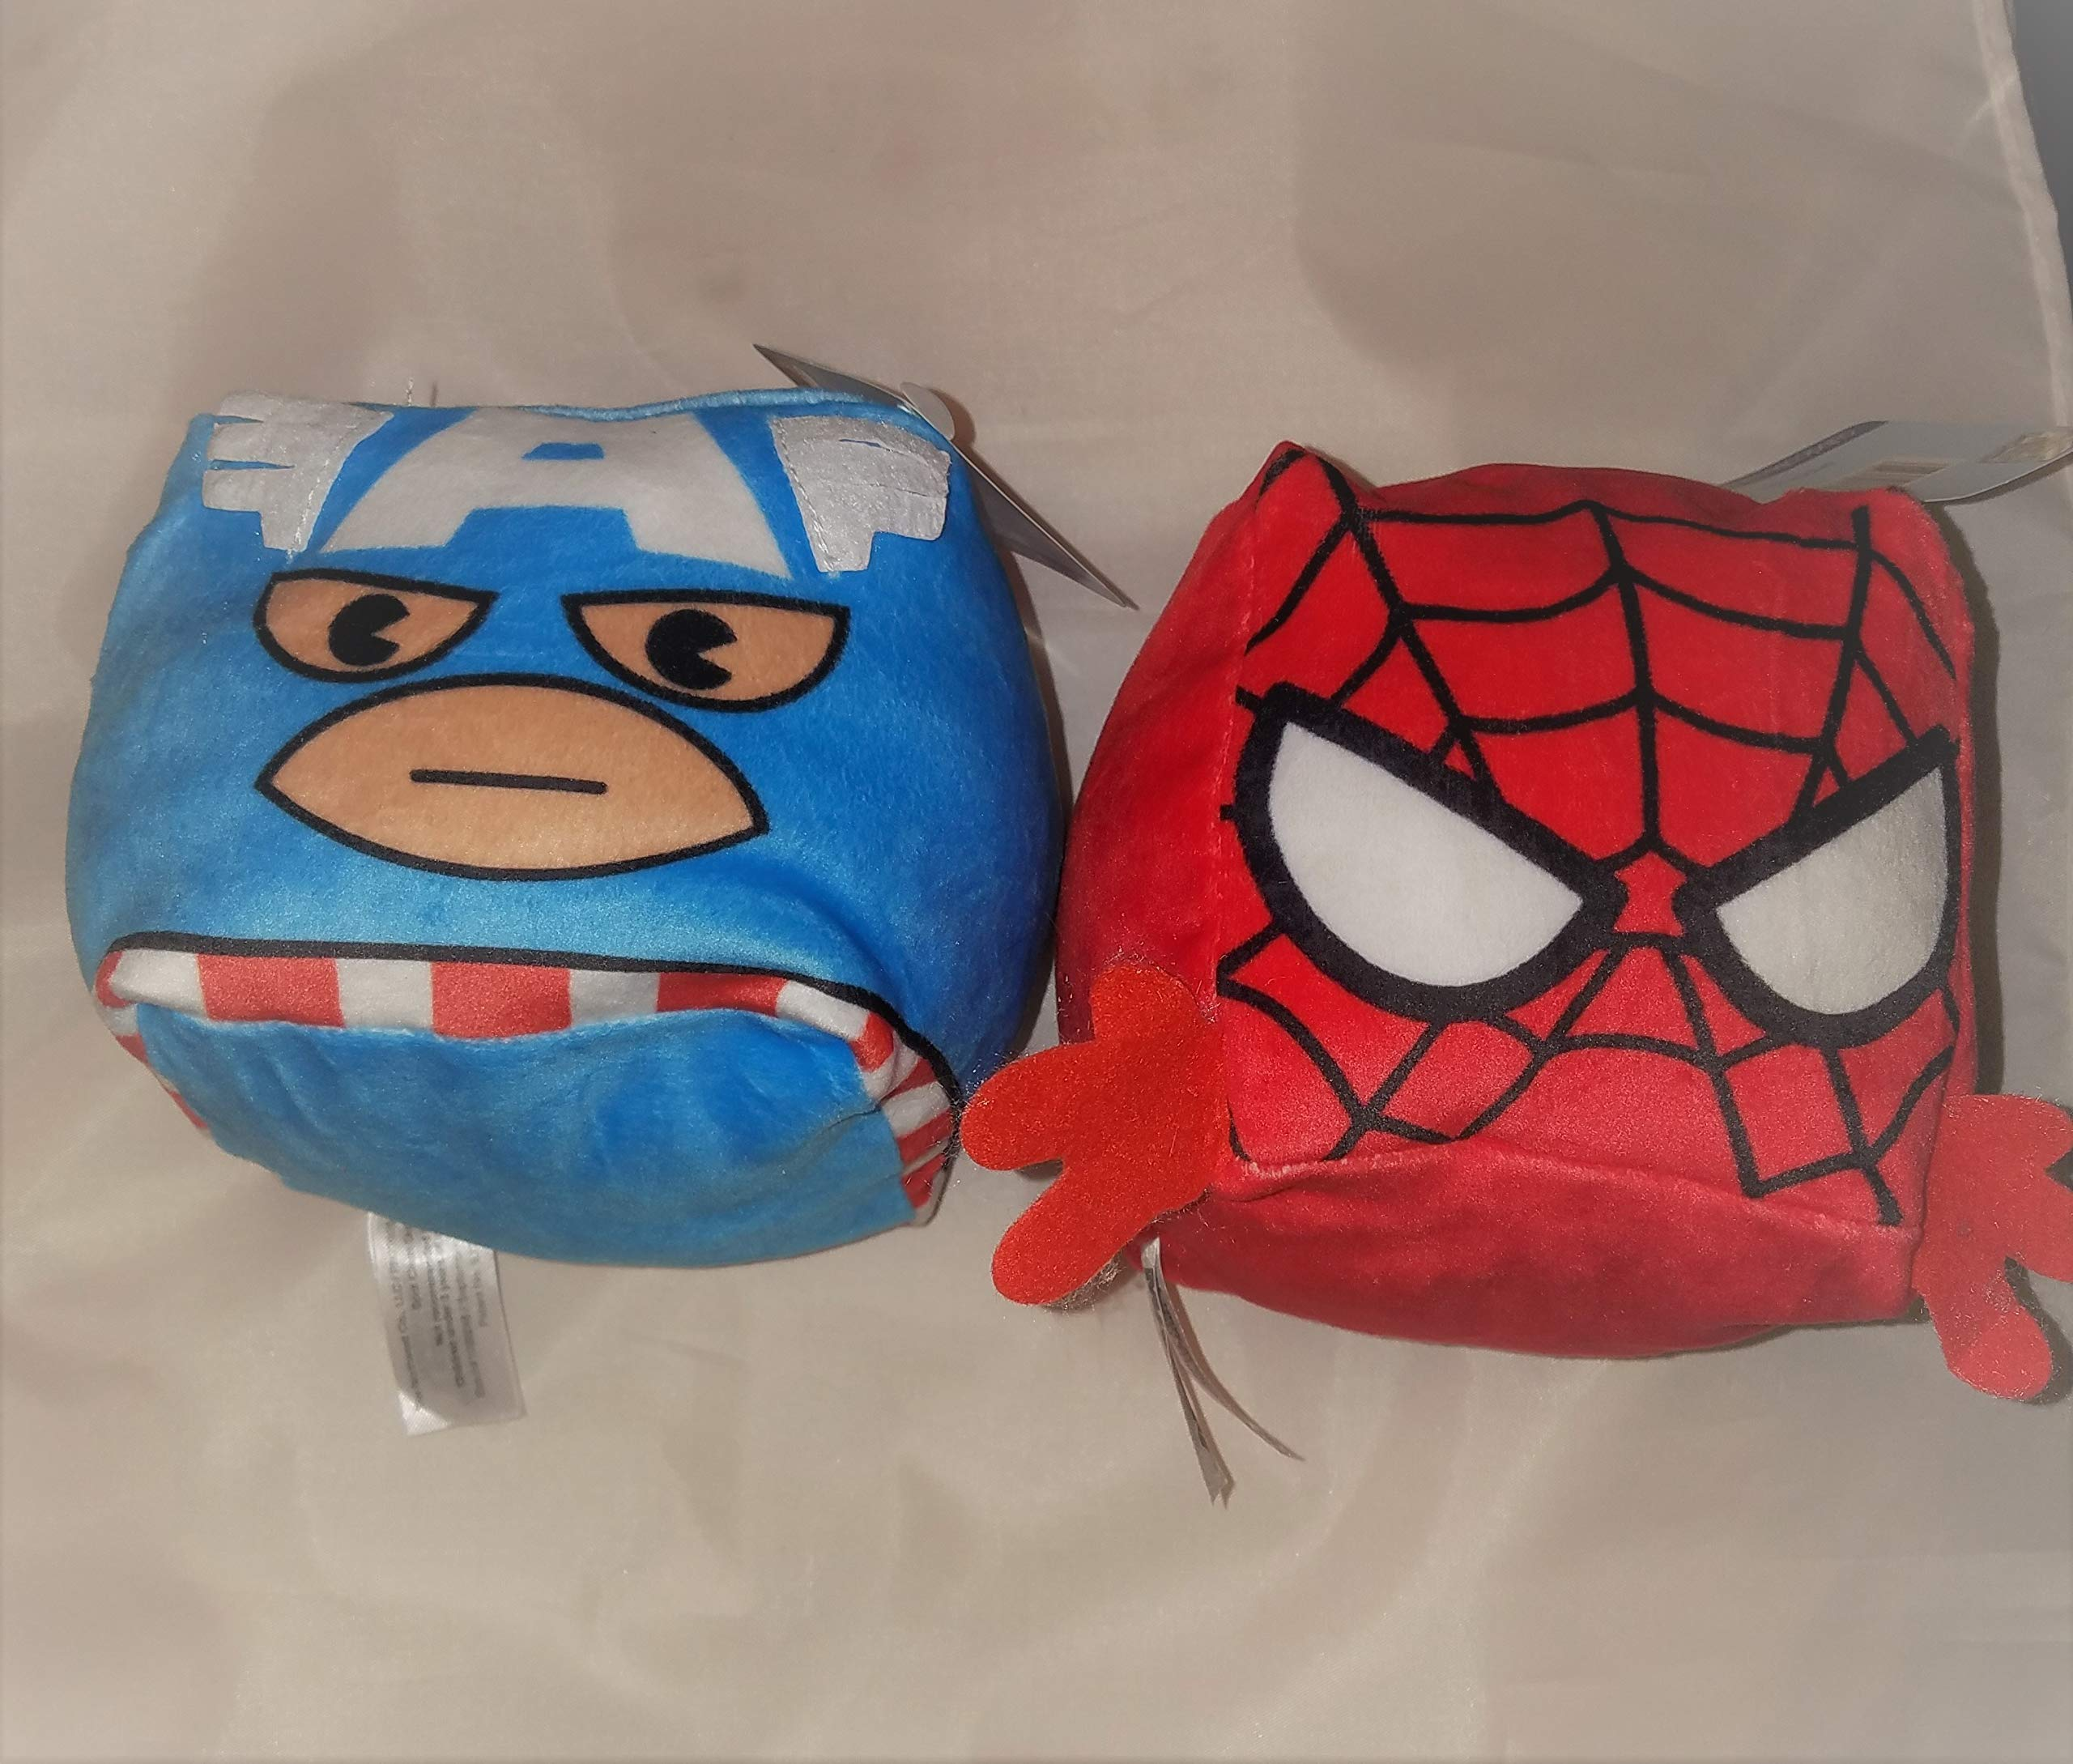 Cubd Collectibles Captain America and Spiderman Plush Mini Travel Pillows 4x4x4 inches